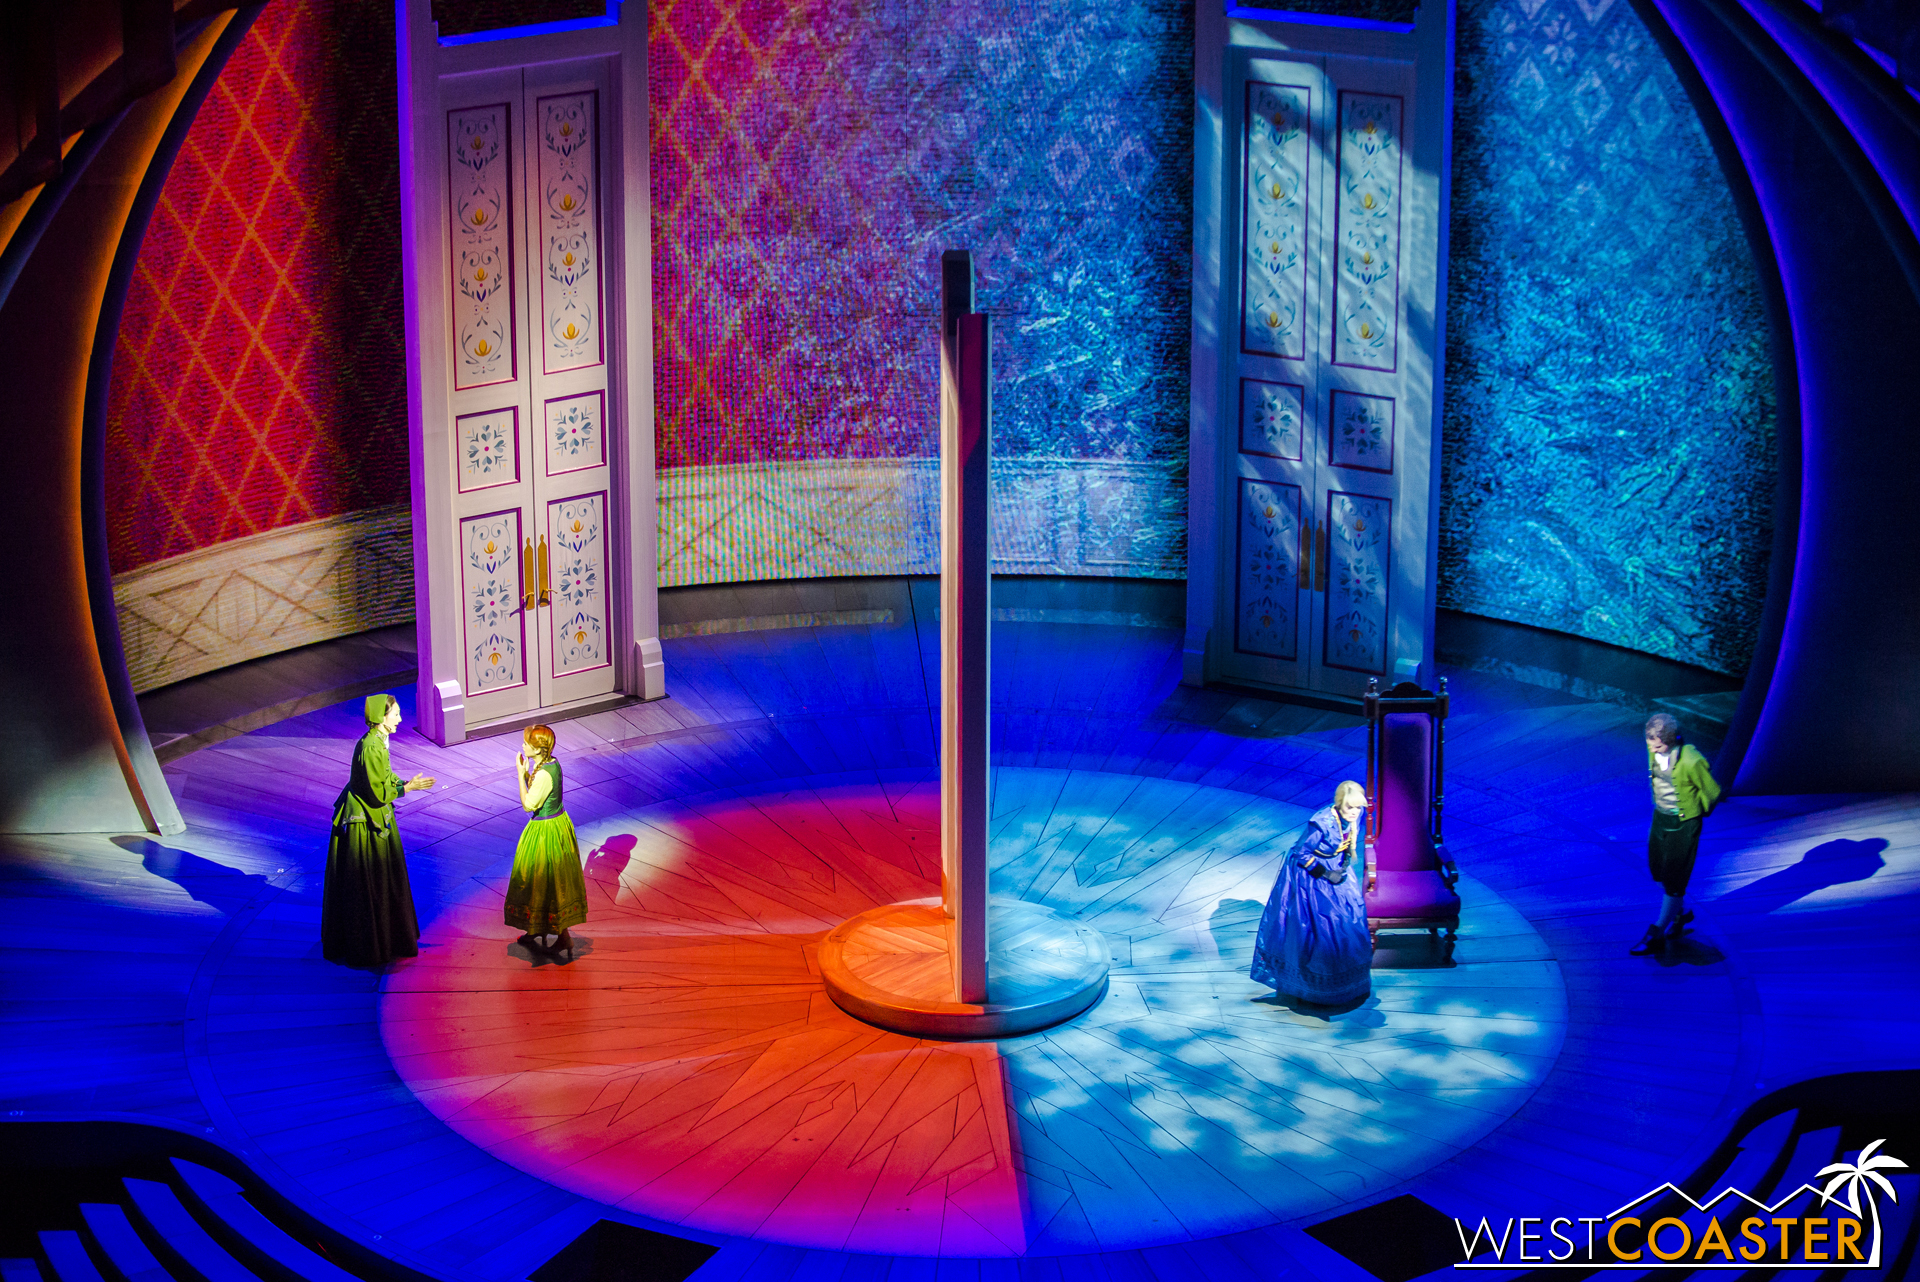 The resulting tension of the incident causes Anna and Elsa to debate joining the First Order or the Resistance, respectively.